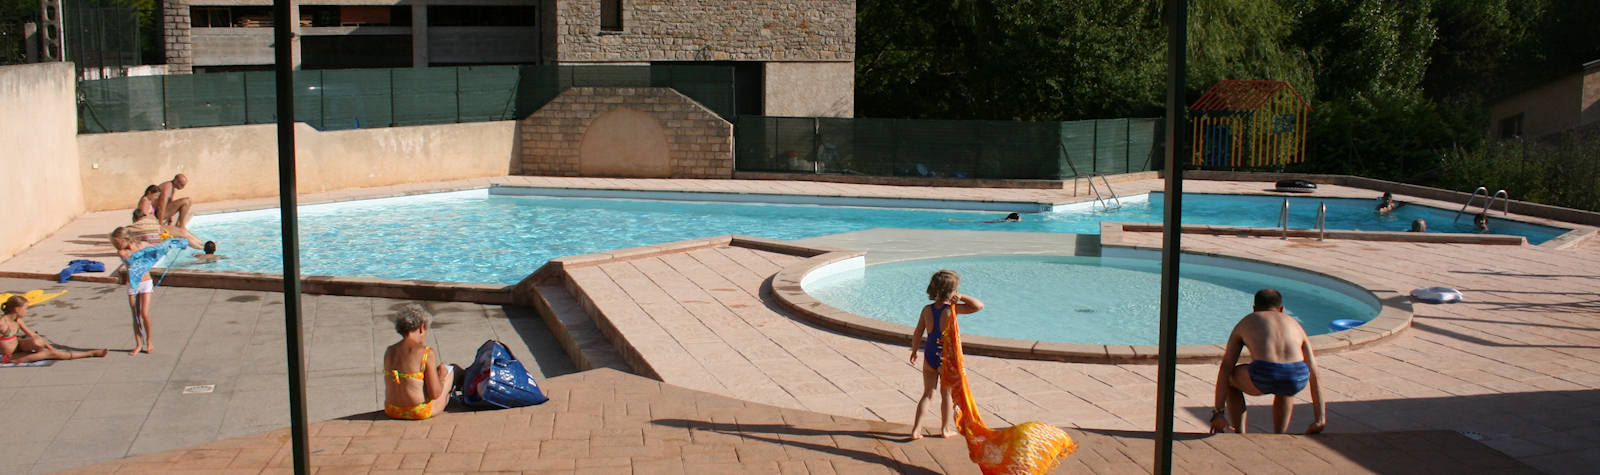 Mentions l gales camping municipal de brouillet le for Camping lozere piscine